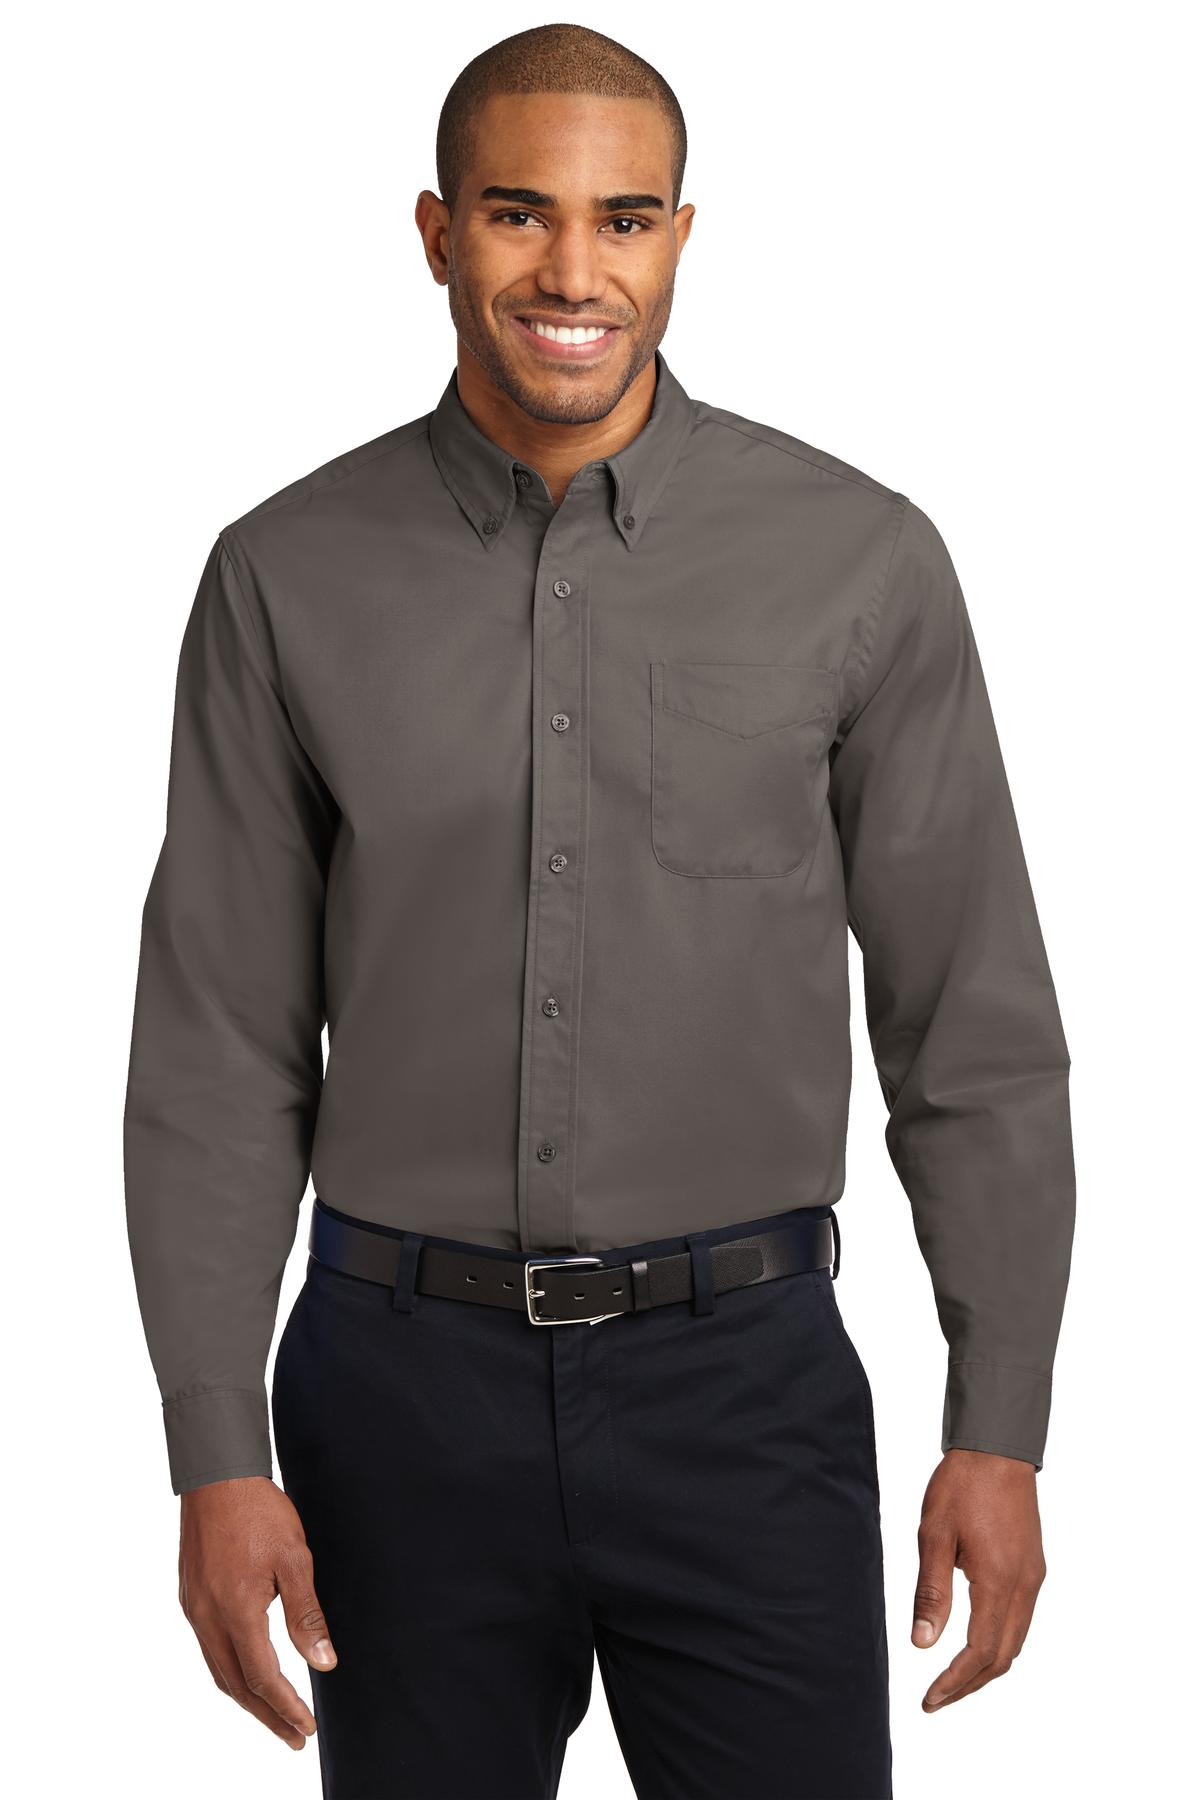 Cool Grey Port Authority Tall Silk Touch Polo.